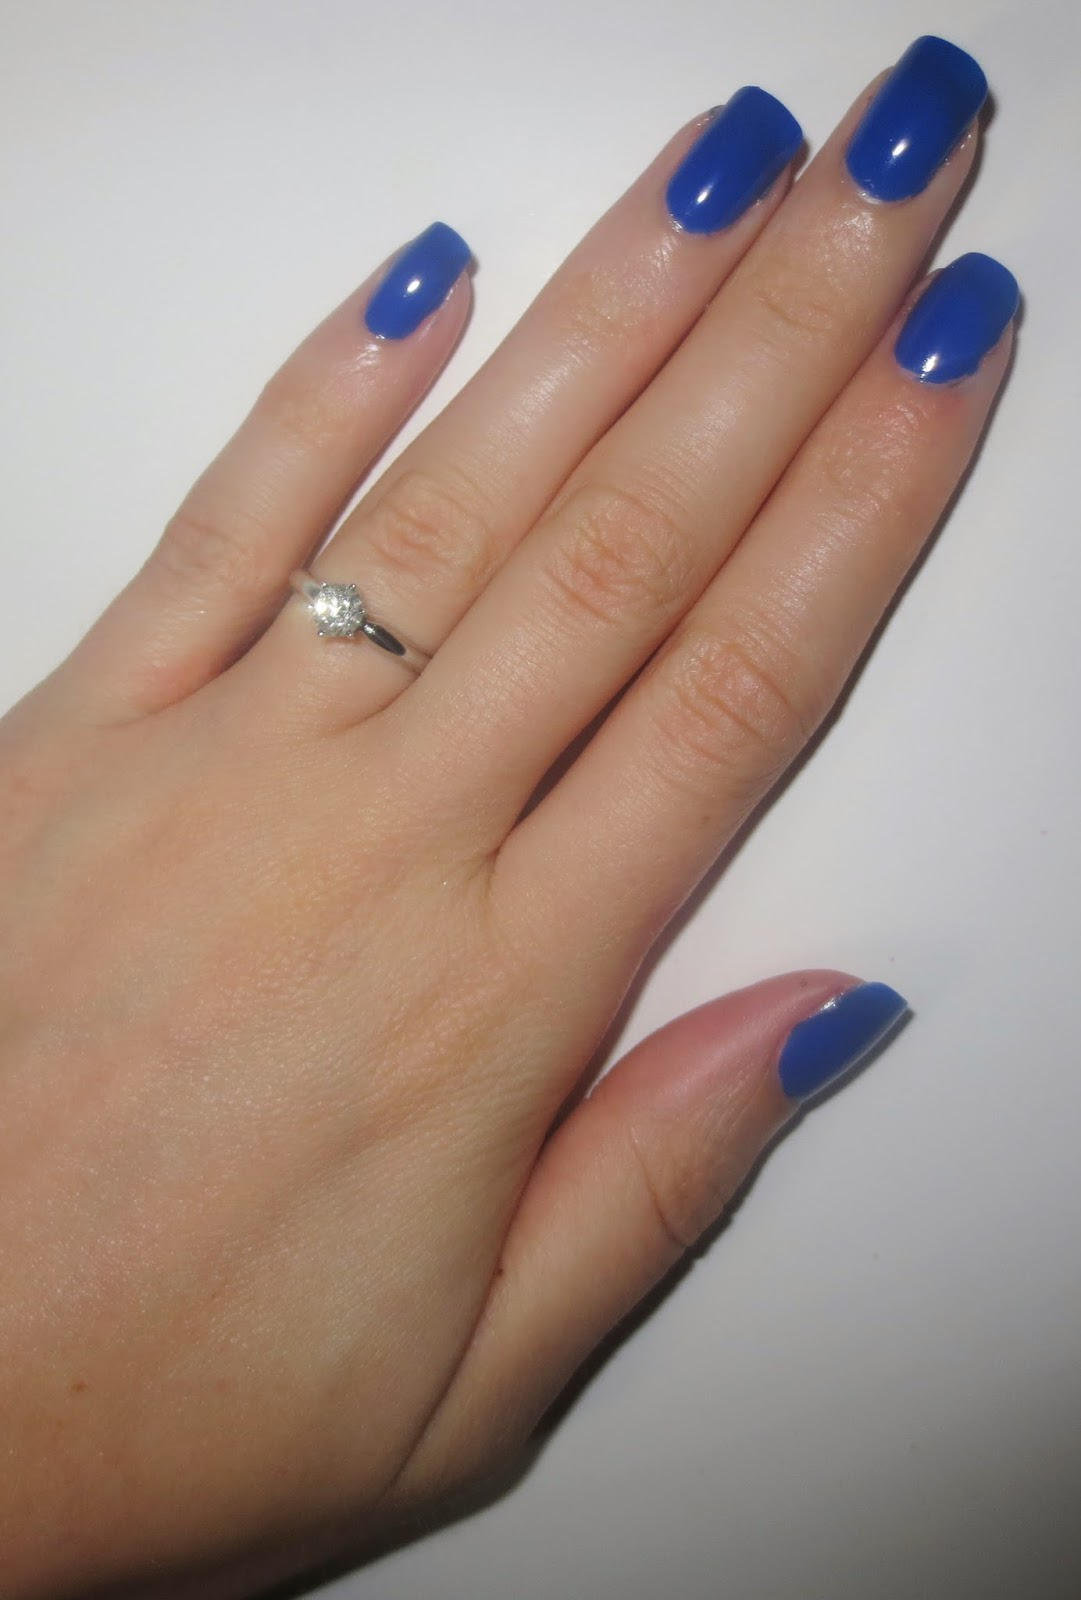 Lancôme Vernis in Love Brilliance Gloss Polish in 557 Nuit D'Azur